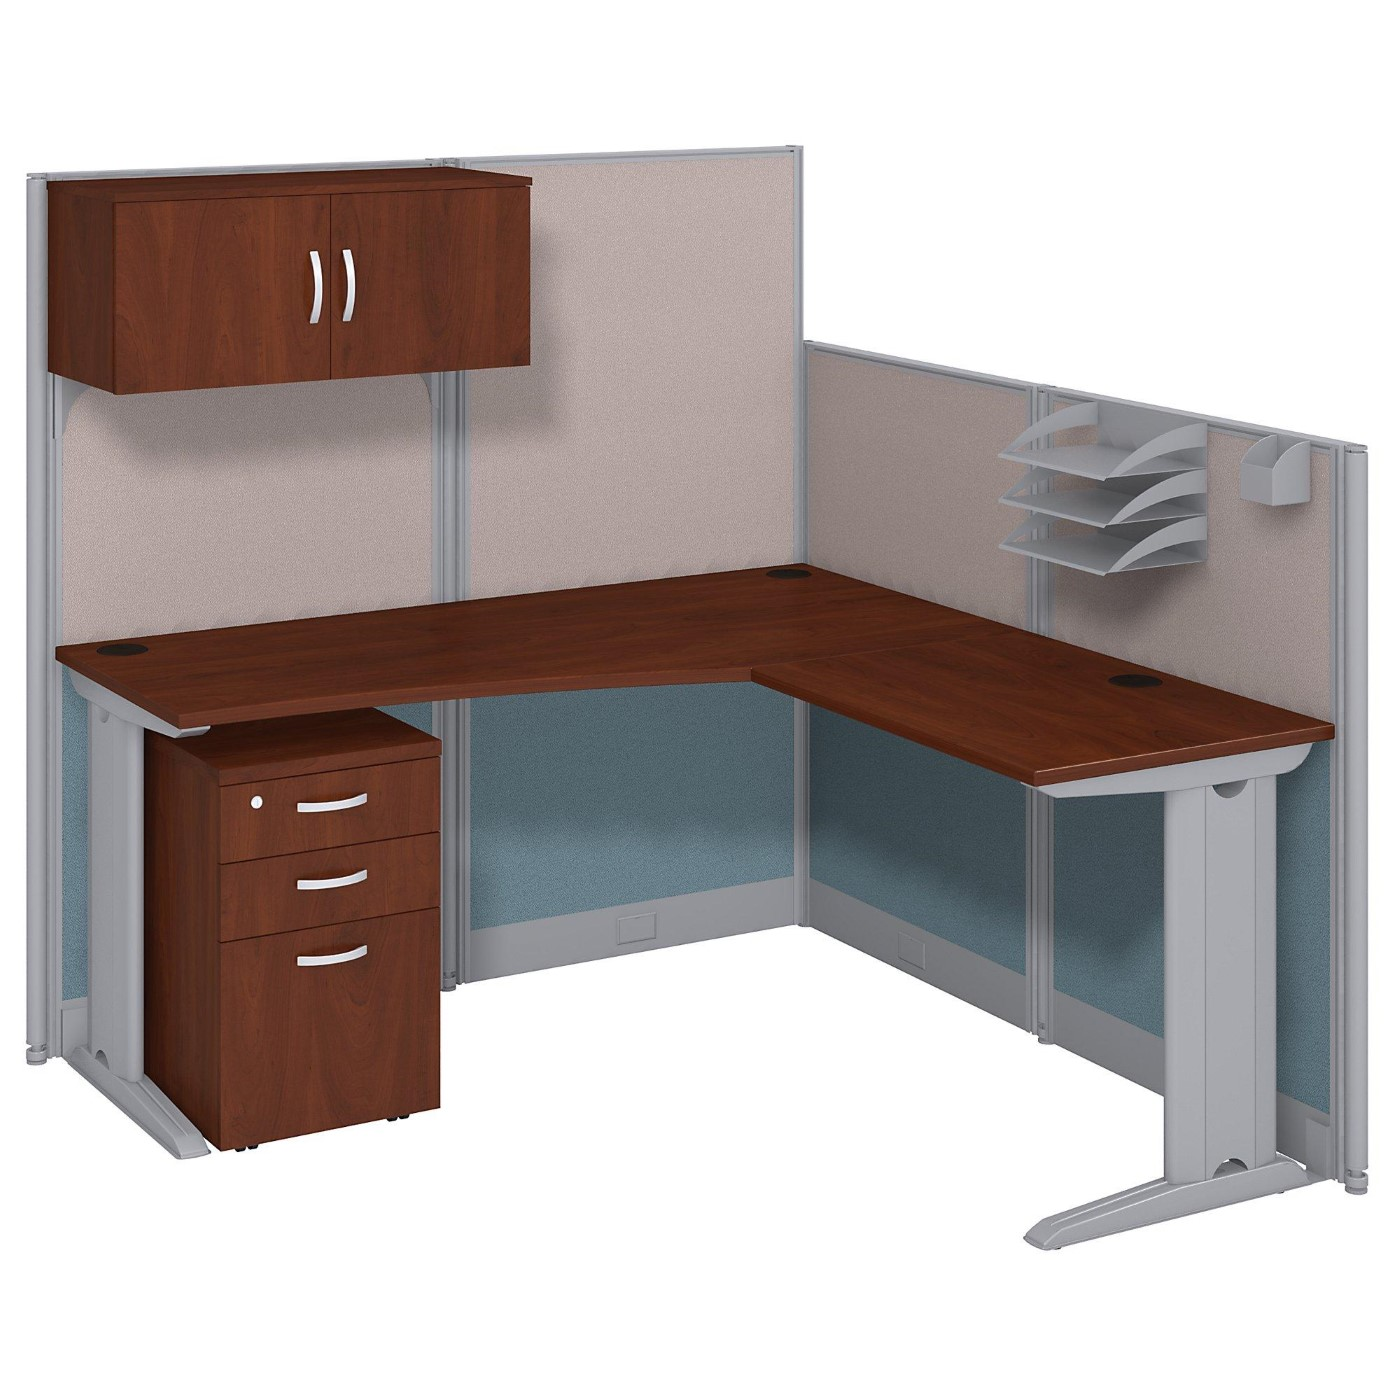 <font color=#c60><b>BUSH BUSINESS FURNITURE OFFICE IN AN HOUR 65W X 65D L SHAPED CUBICLE WORKSTATION WITH STORAGE. FREE SHIPPING</font></b></font></b>